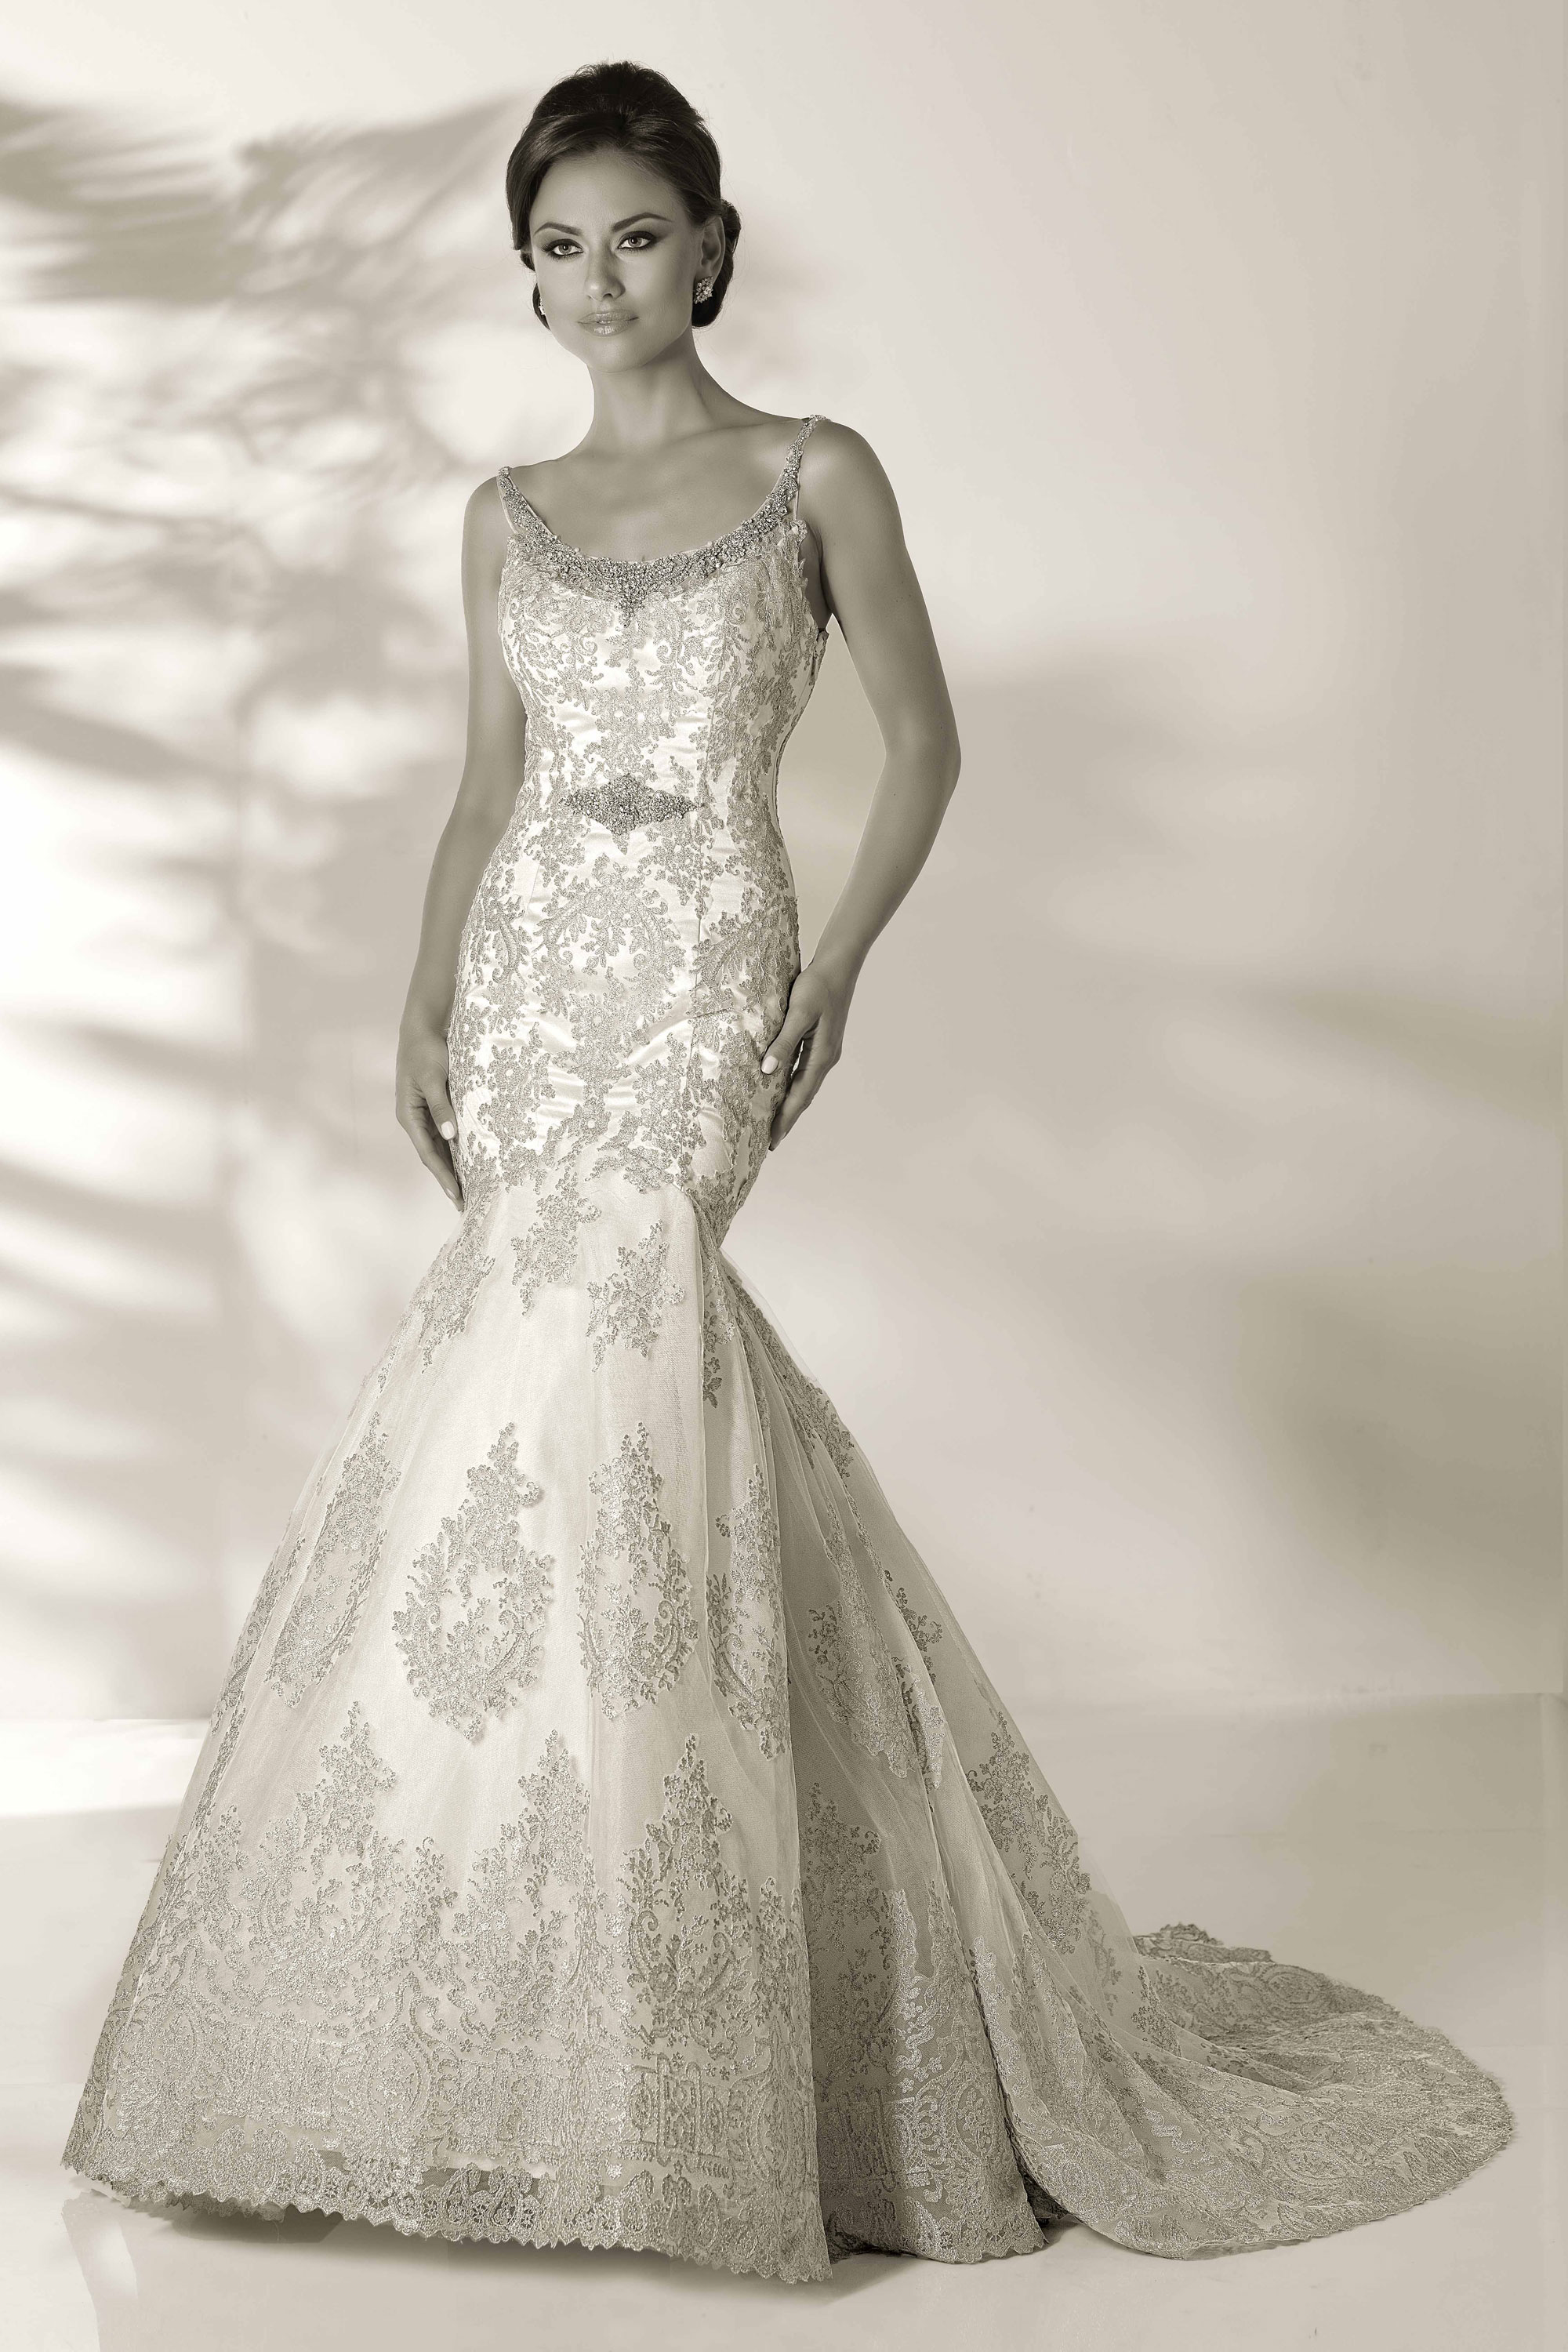 cristiano-lucci-wedding-dresses-17-01052014